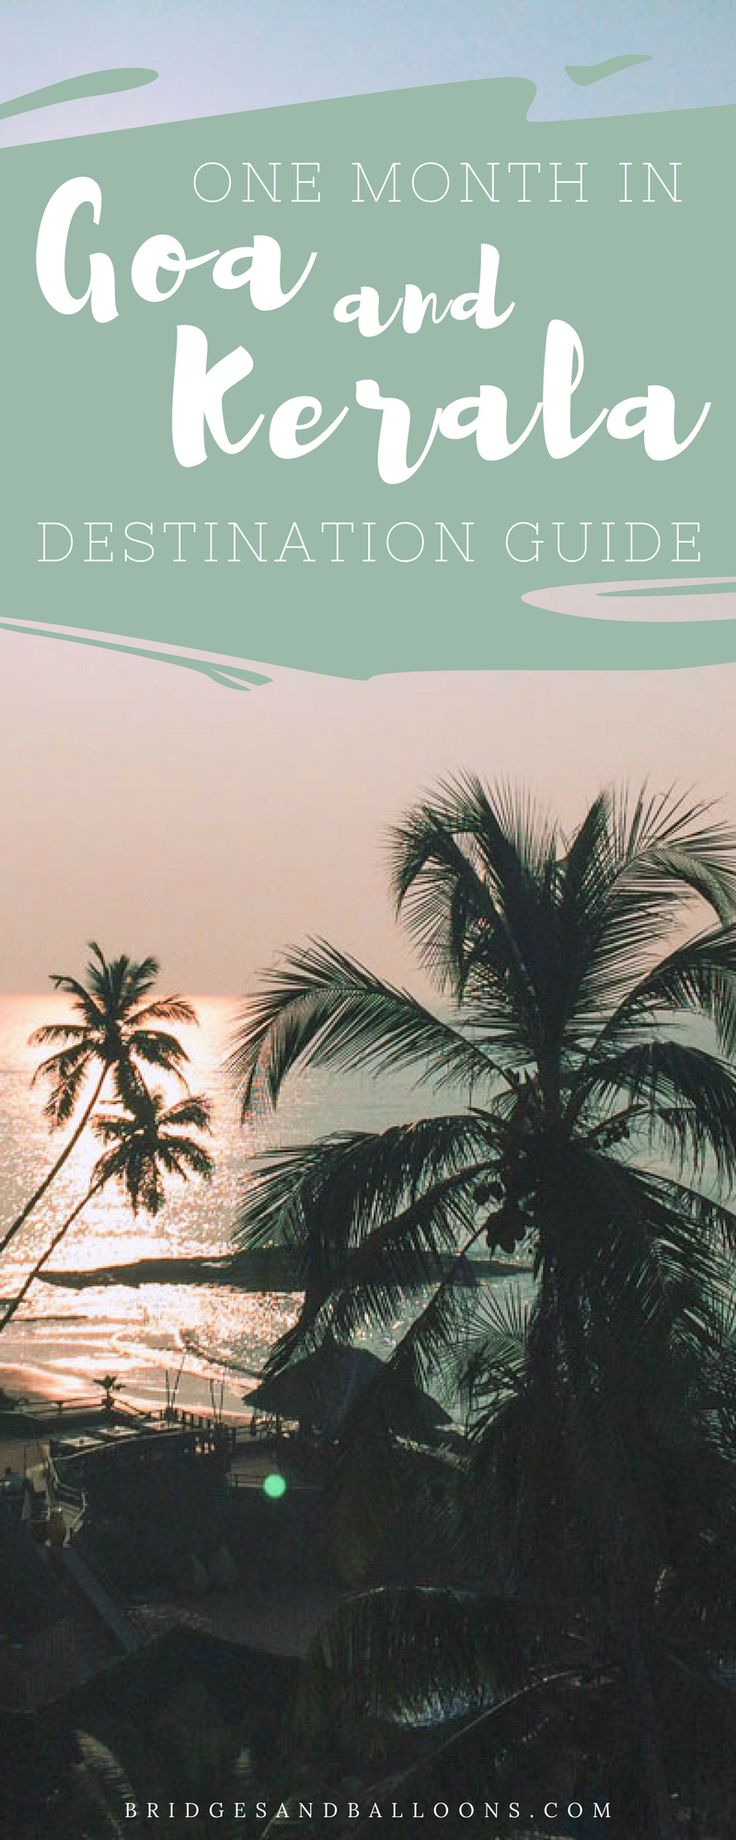 A complete guide to exploring beautiful Goa and Kerala over one month. This trip is all about relaxing, and includes a full 4 week itinerary with things to do, top hotels and accommodation and best restaurants and food. This part of India is an absolute paradise and should absolutely be added to your bucket list! Travel inspiration and practical tips for your trip to India. | Bridges and Balloons #India